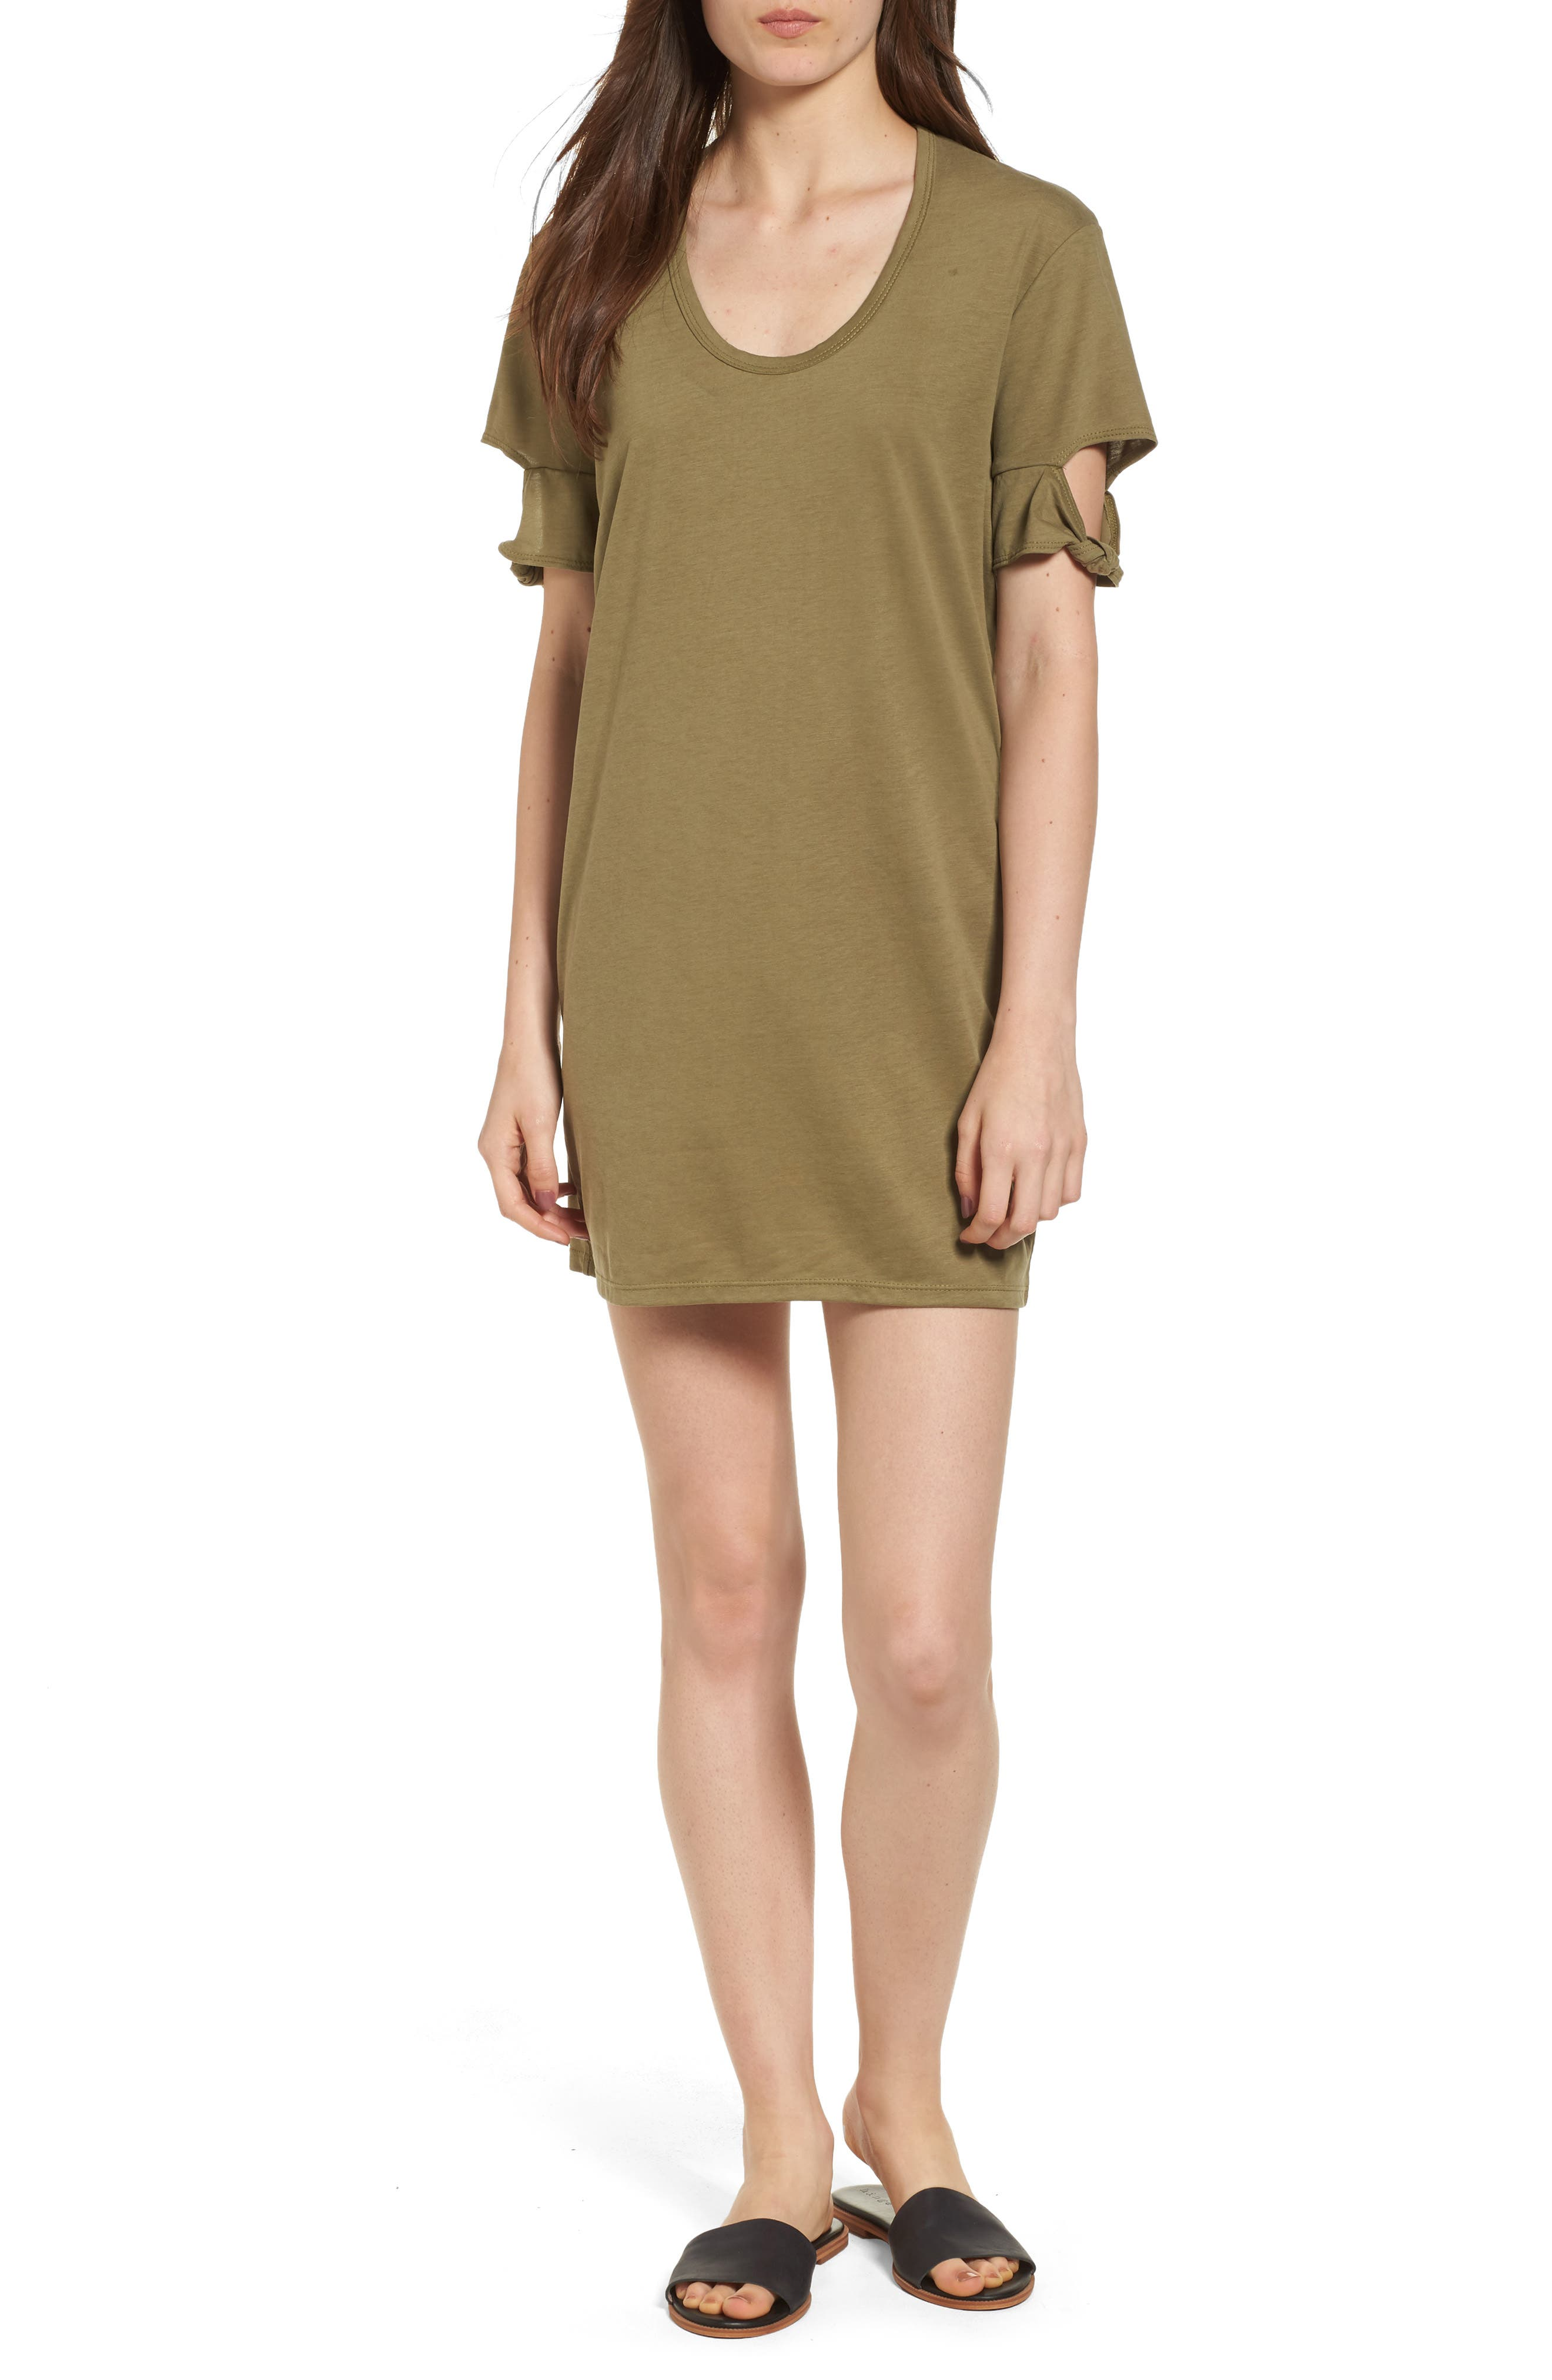 Main Image - PST by Project Social T Knotted Sleeve T-Shirt Dress